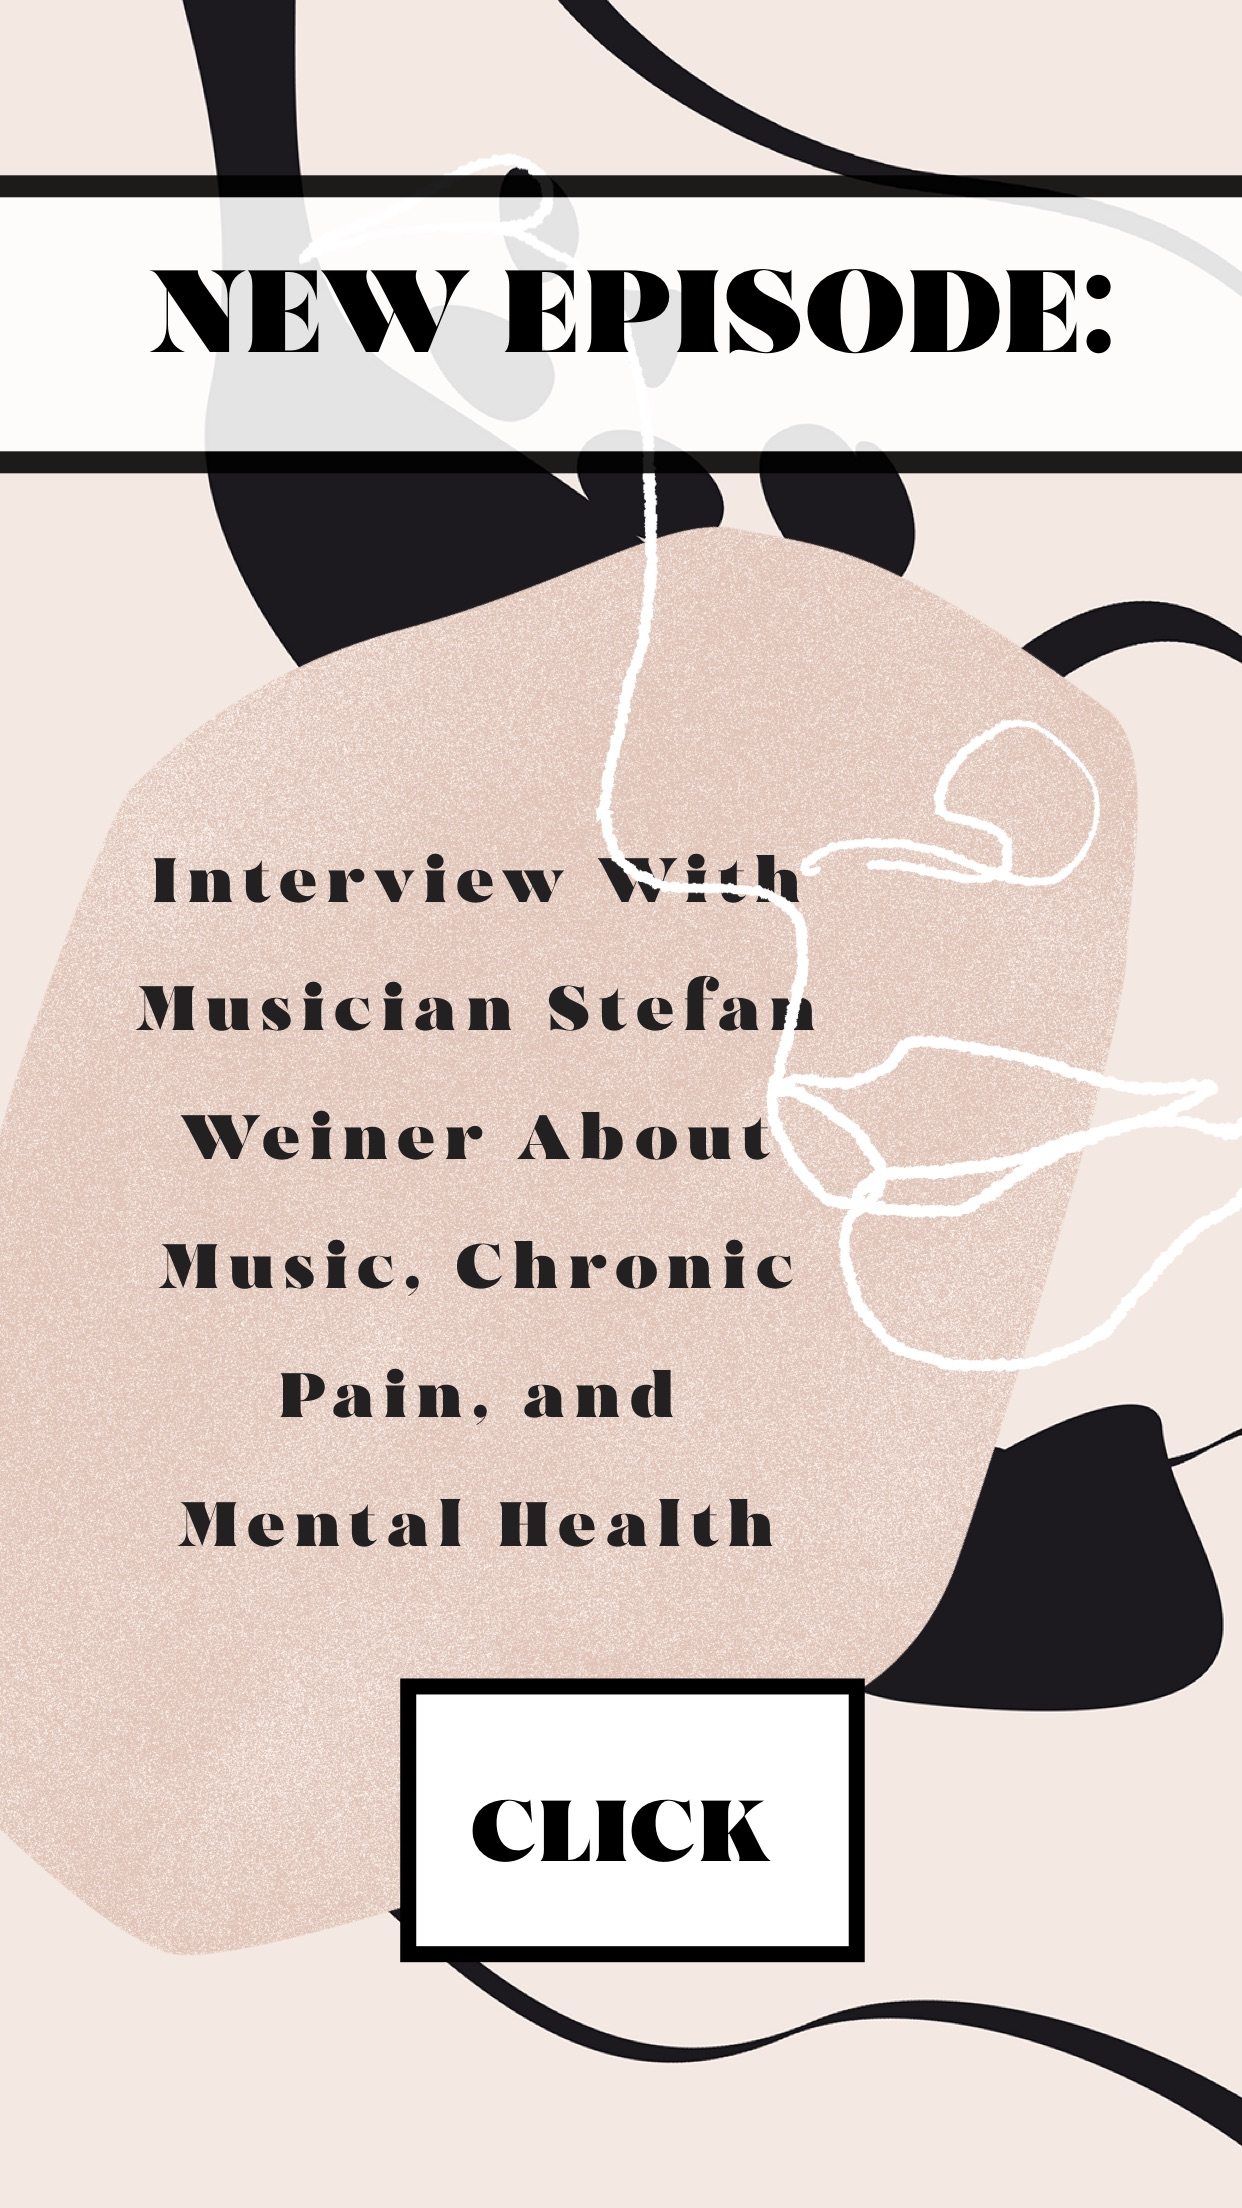 Interview With Musician Stephan Weiner About Music, Chronic Pain, and Mental Health